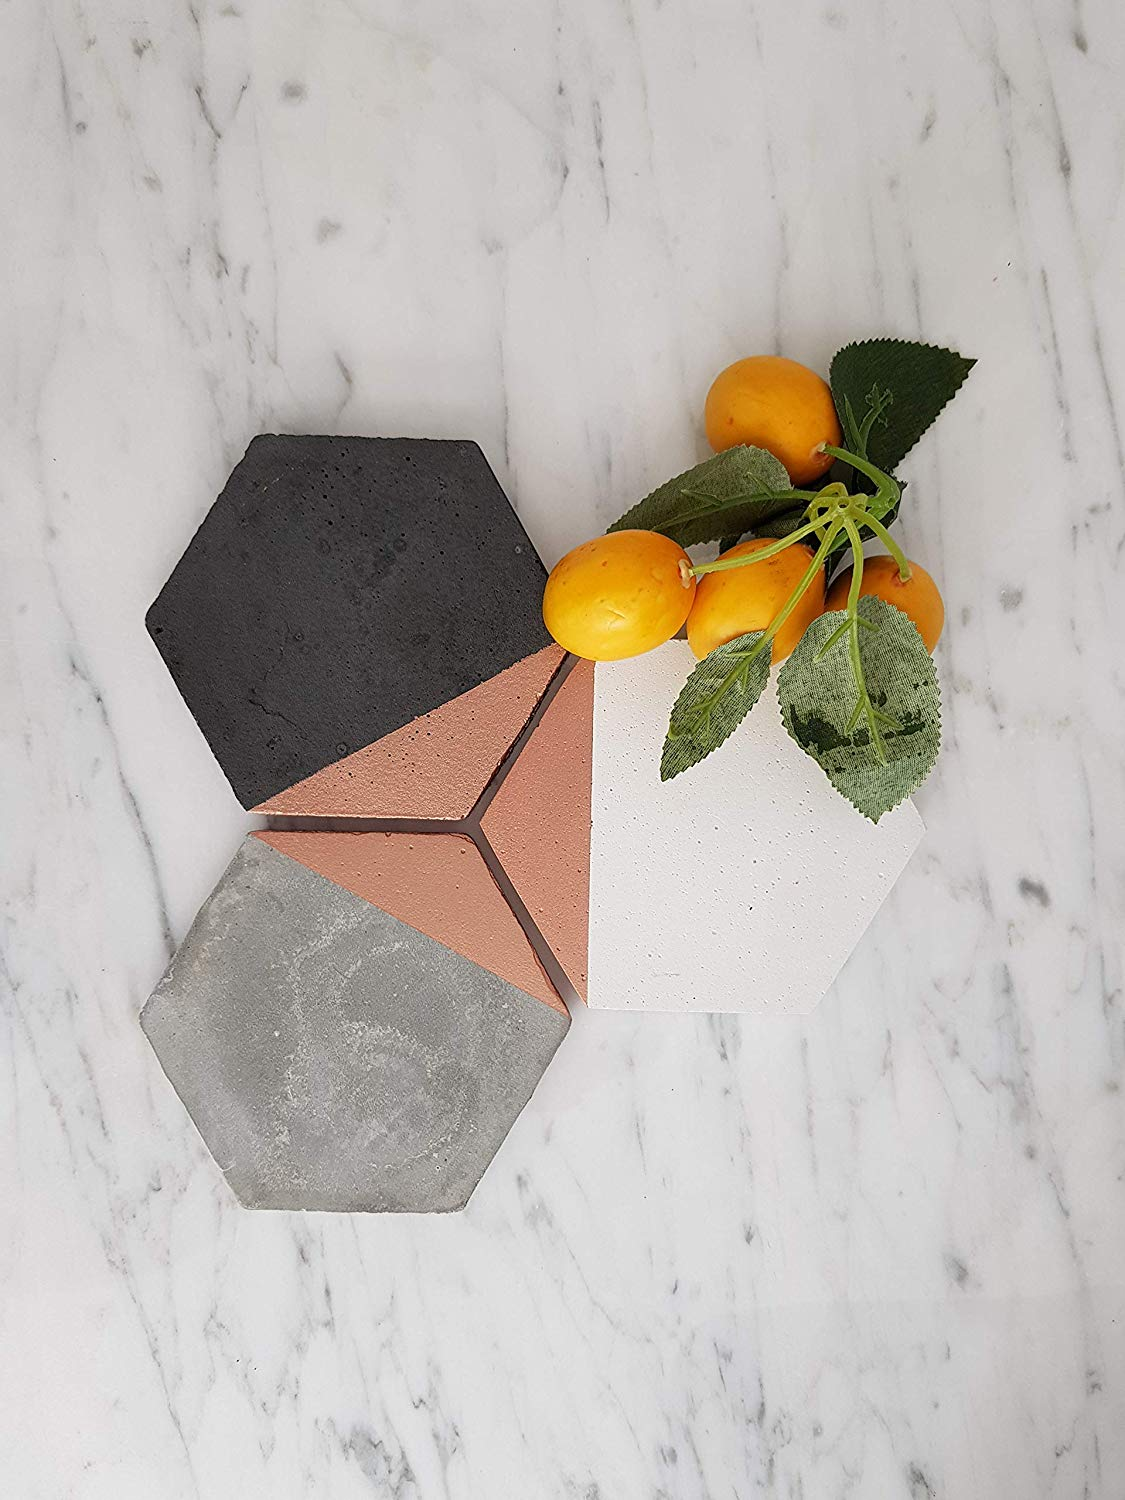 Set Of 4 Hexagon Coasters, concrete coasters,marble coasters,cement coasters,Rose Gold Painted Concrete, Concrete Decor,Grey White Black Coasters